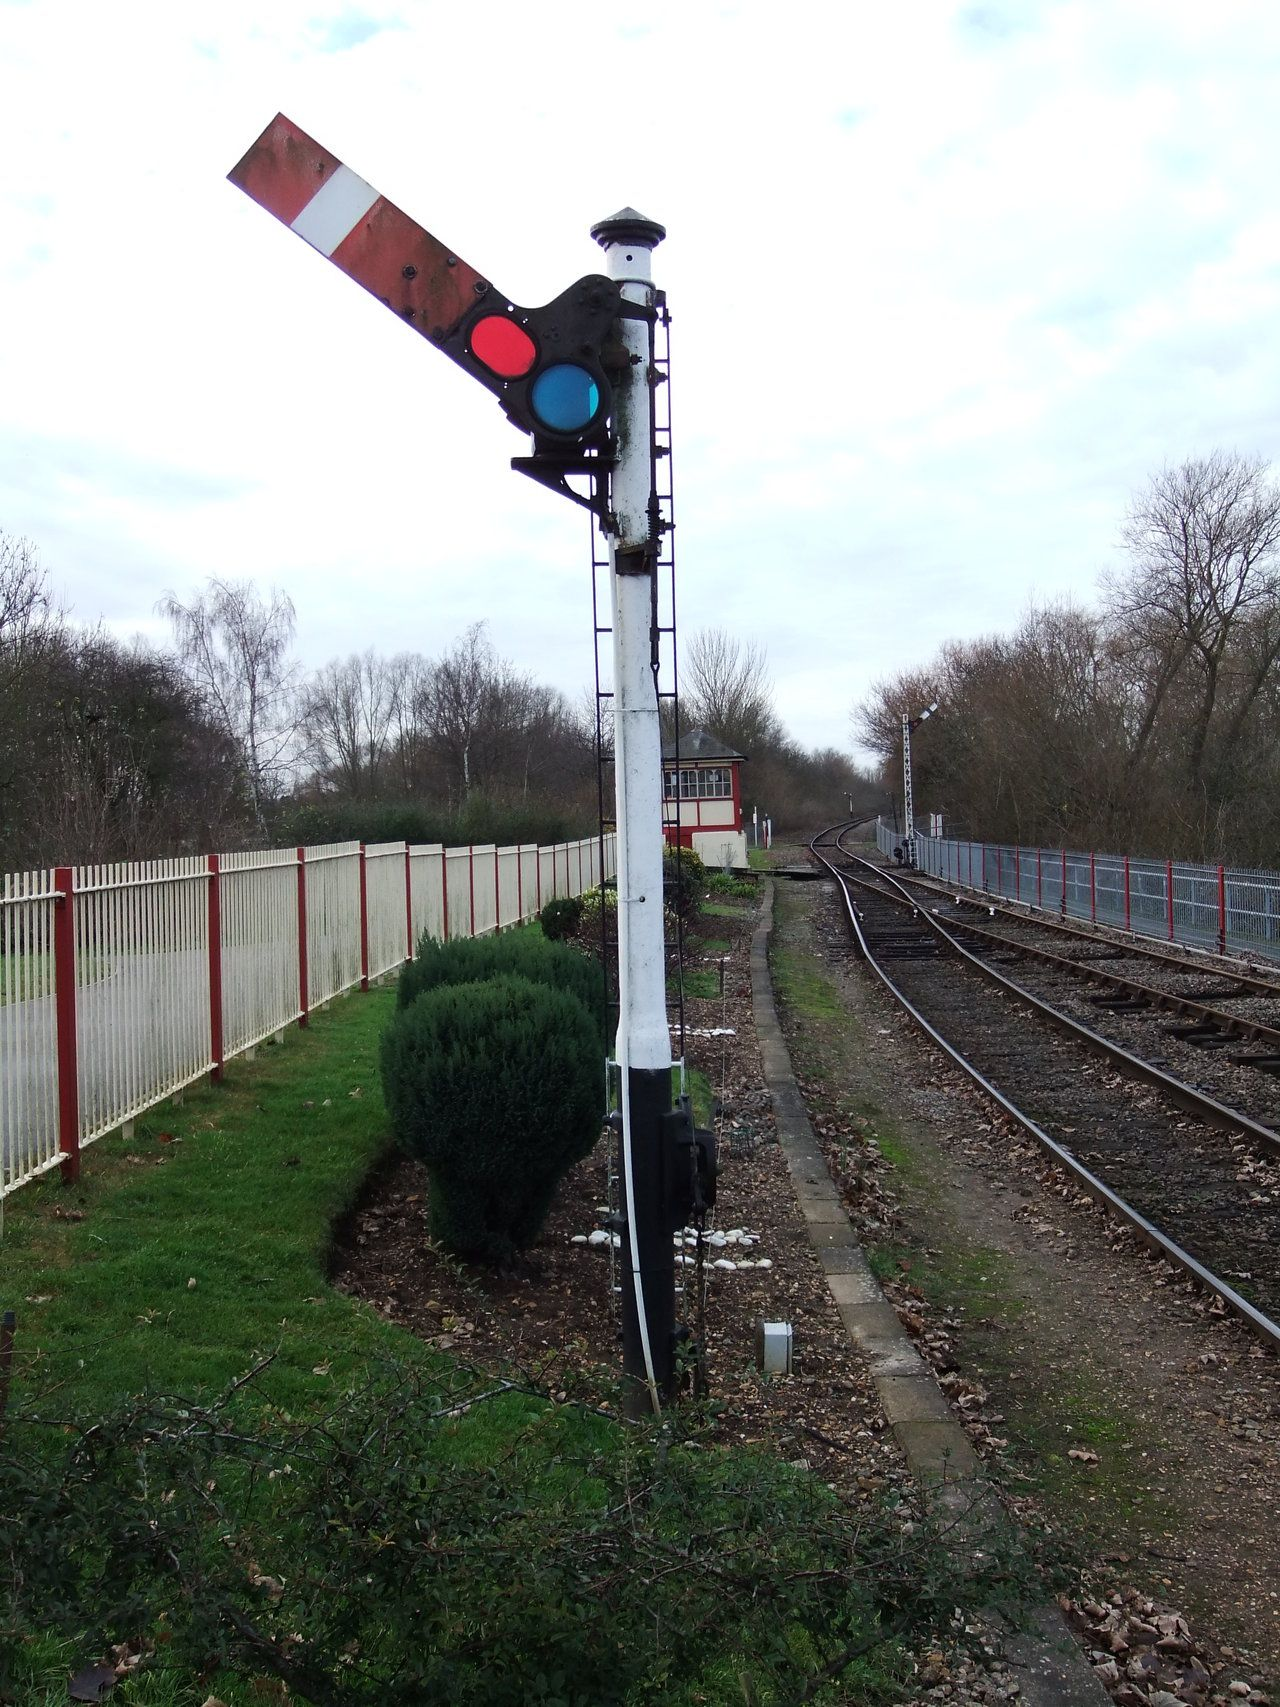 Railway signal photo